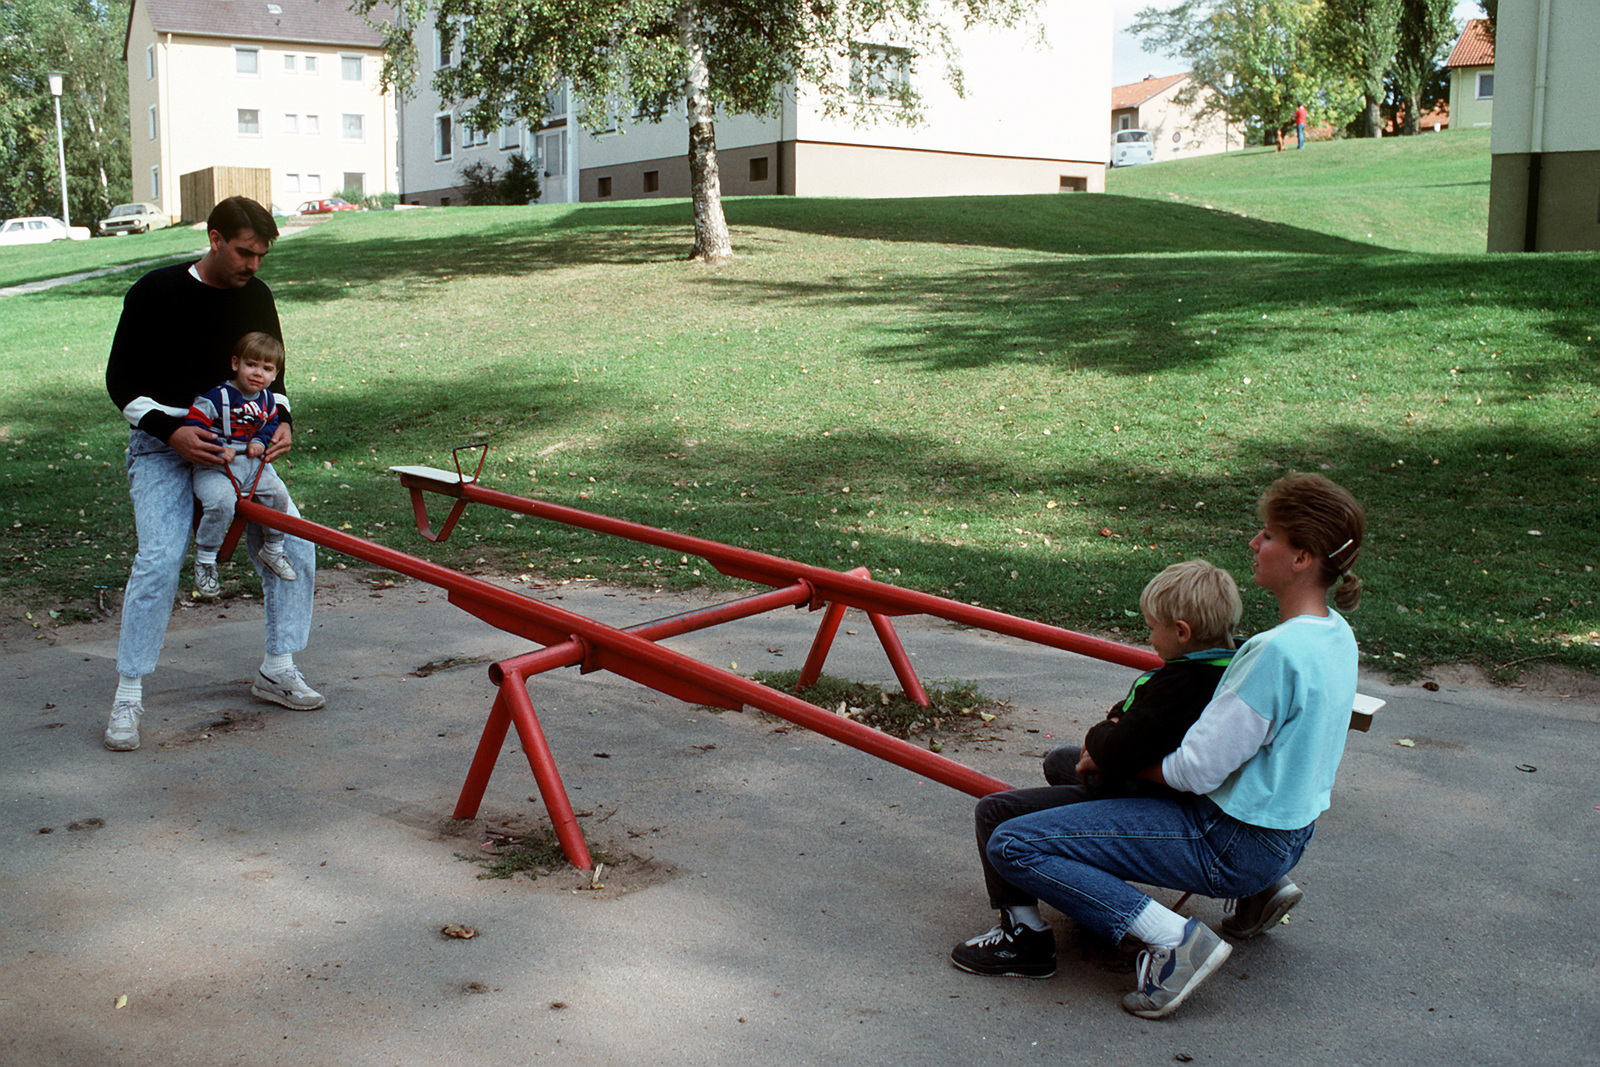 STAFF SGT. David and SGT. Sandra McClellan play with their children near their quarters. The McClellans are among the many military families soon to be affected by the closing of Zweibruecken, scheduled for early 1992